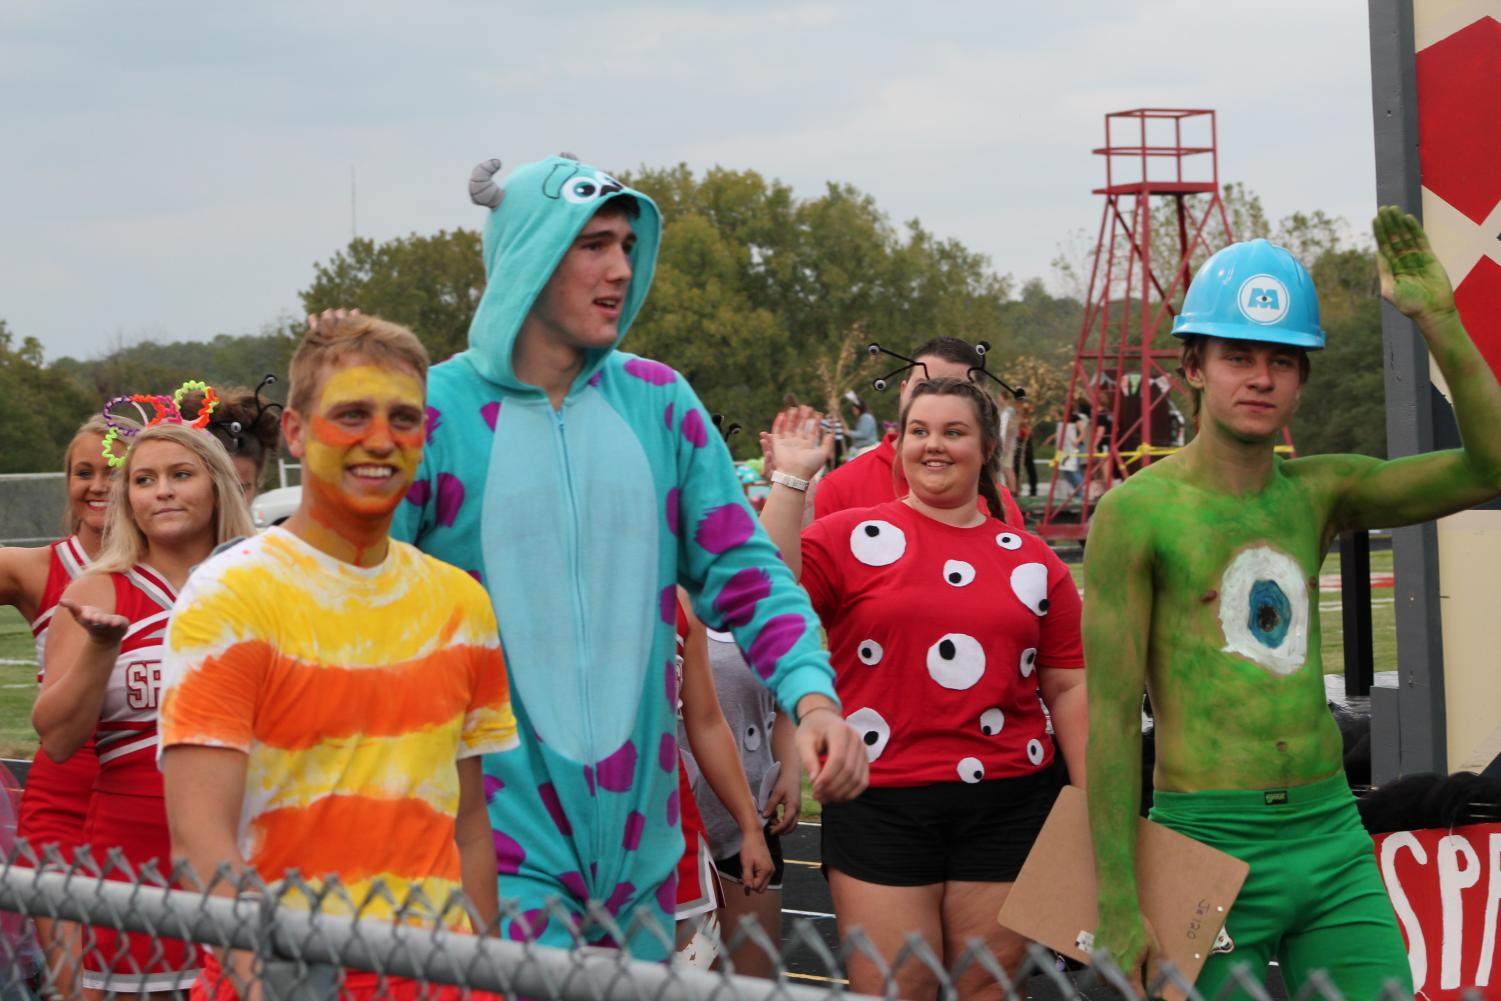 Seniors walk with their Monsters Inc float